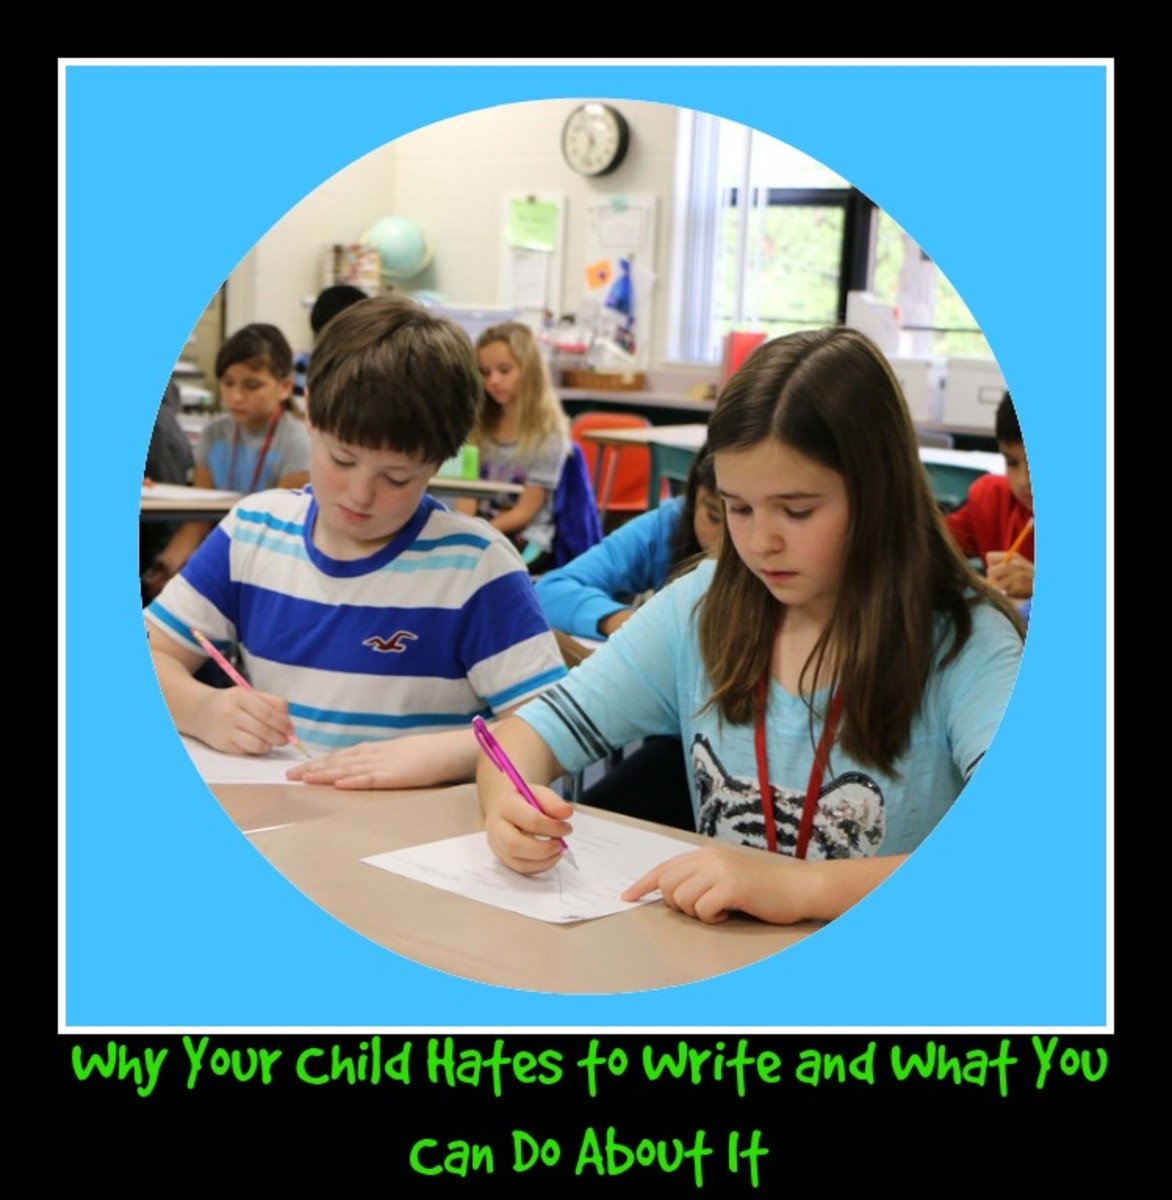 Why Your Child Hates to Write and What You Can Do About It